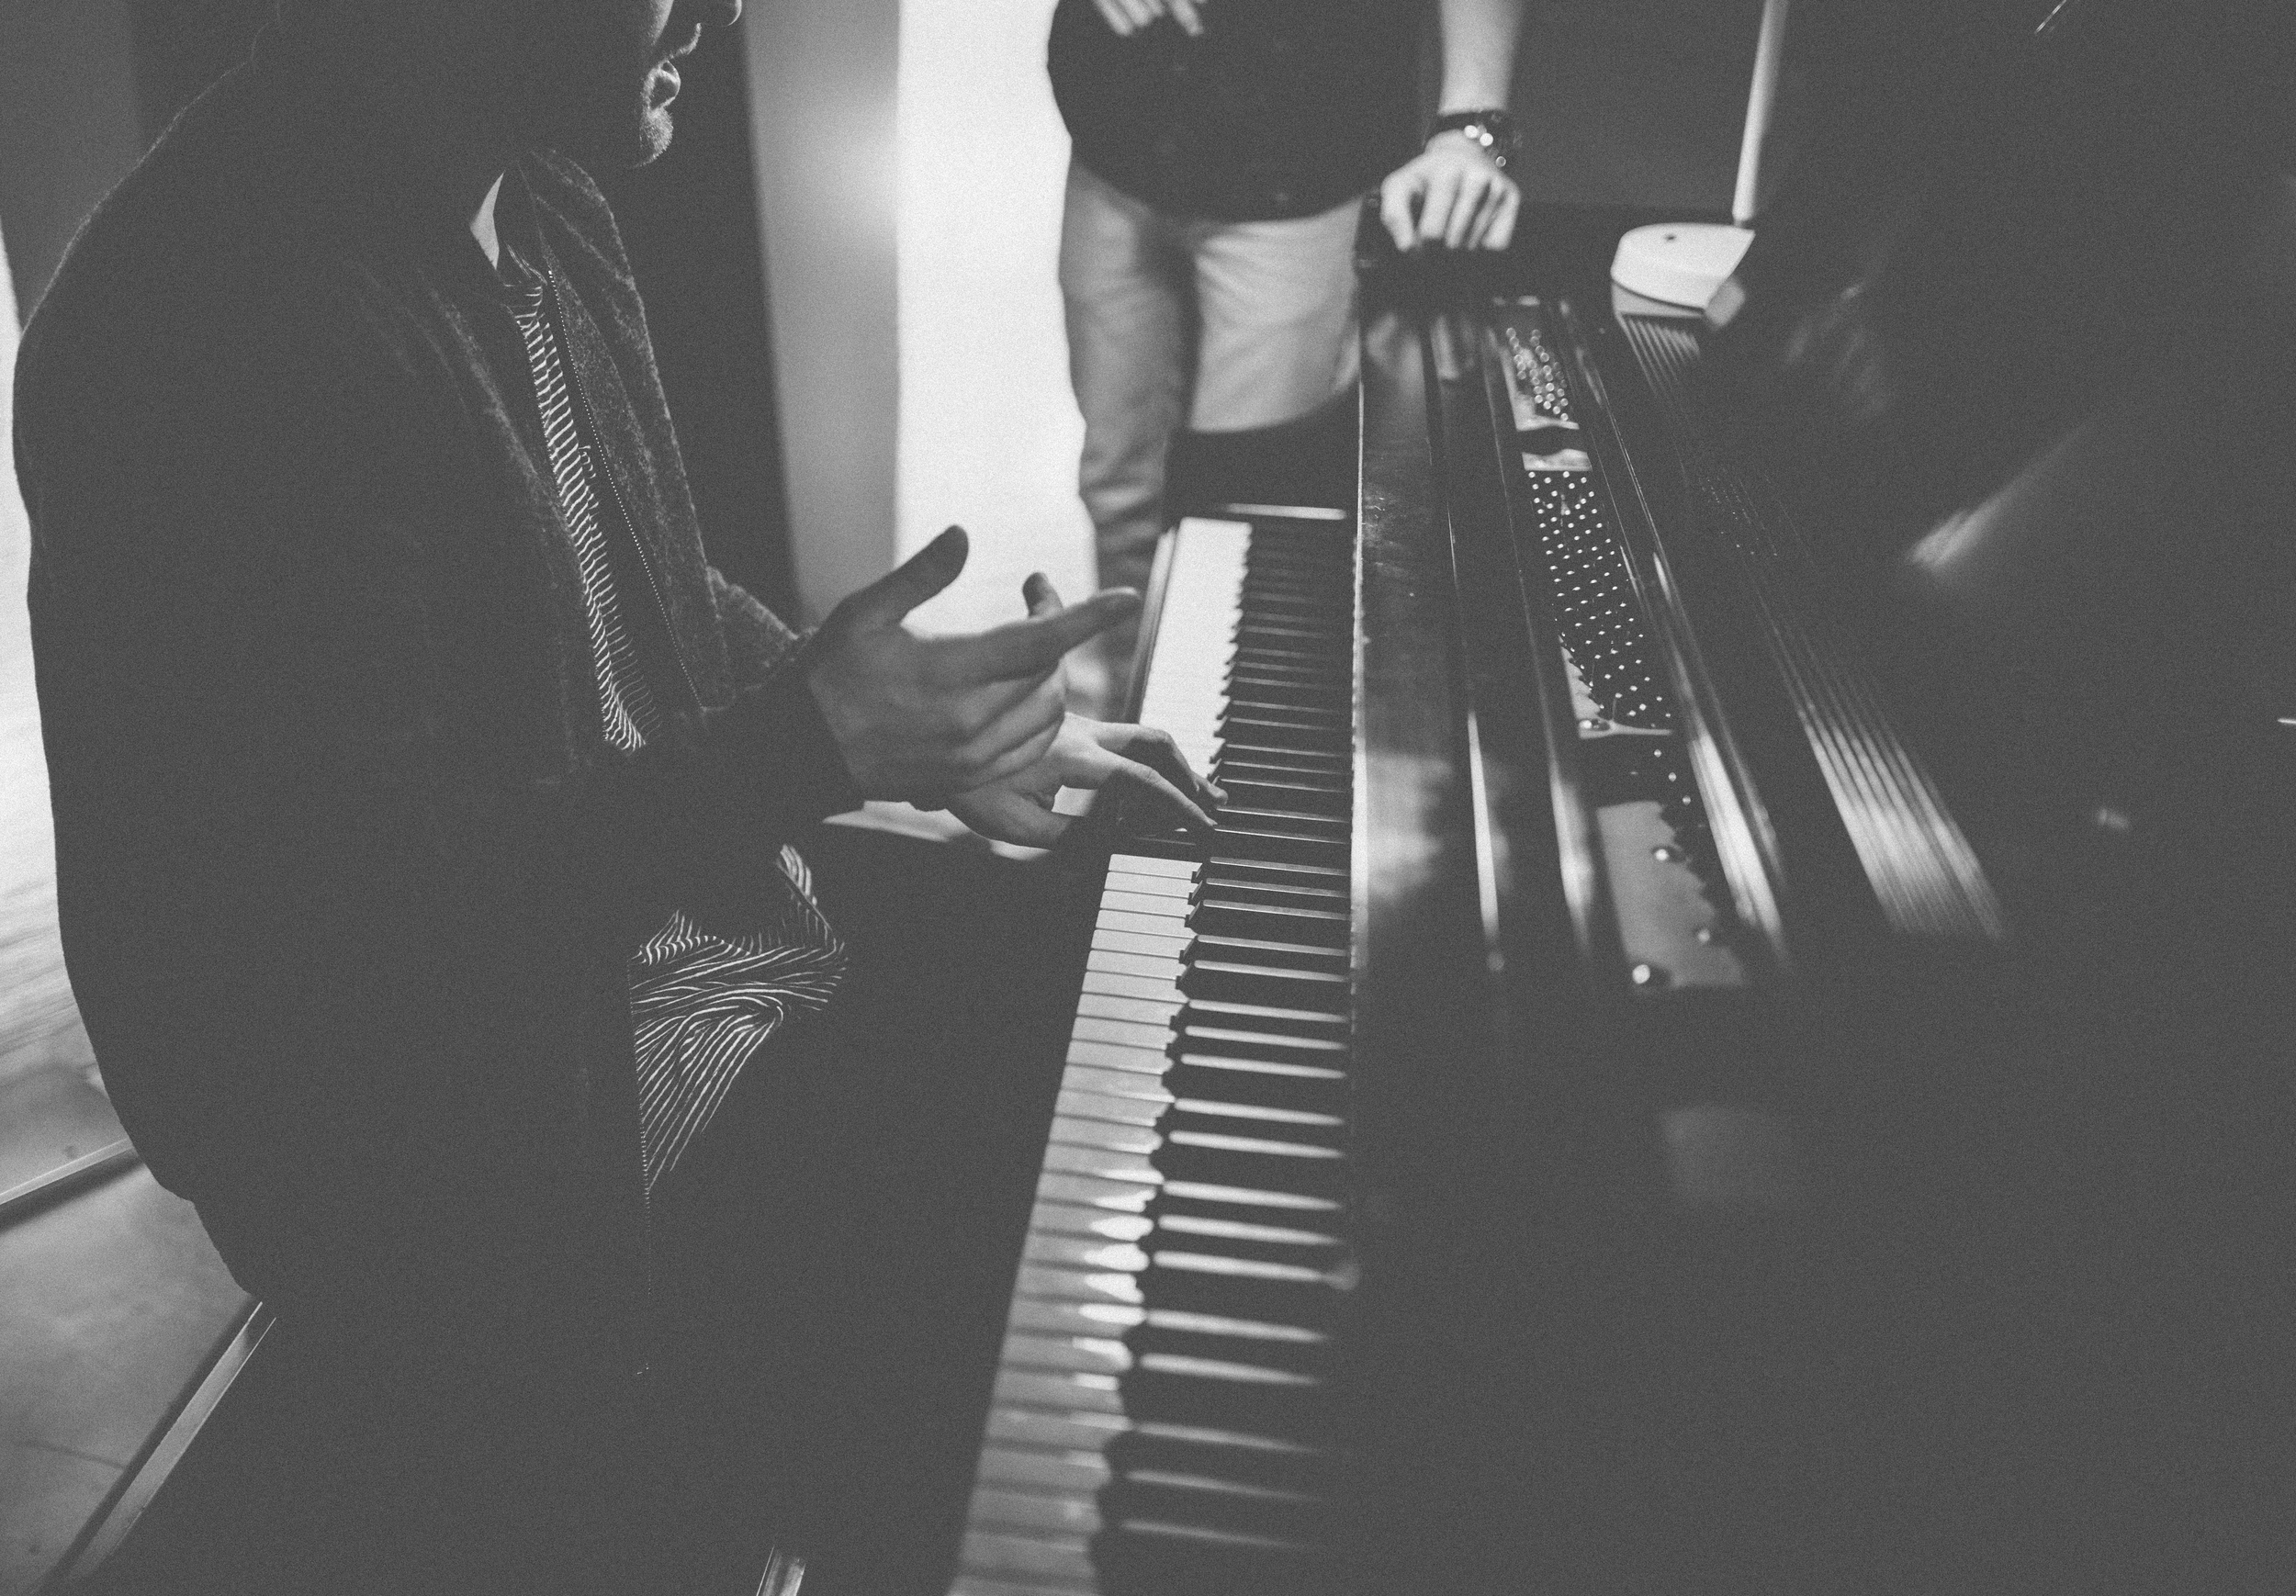 JTL Group songwriting at the piano